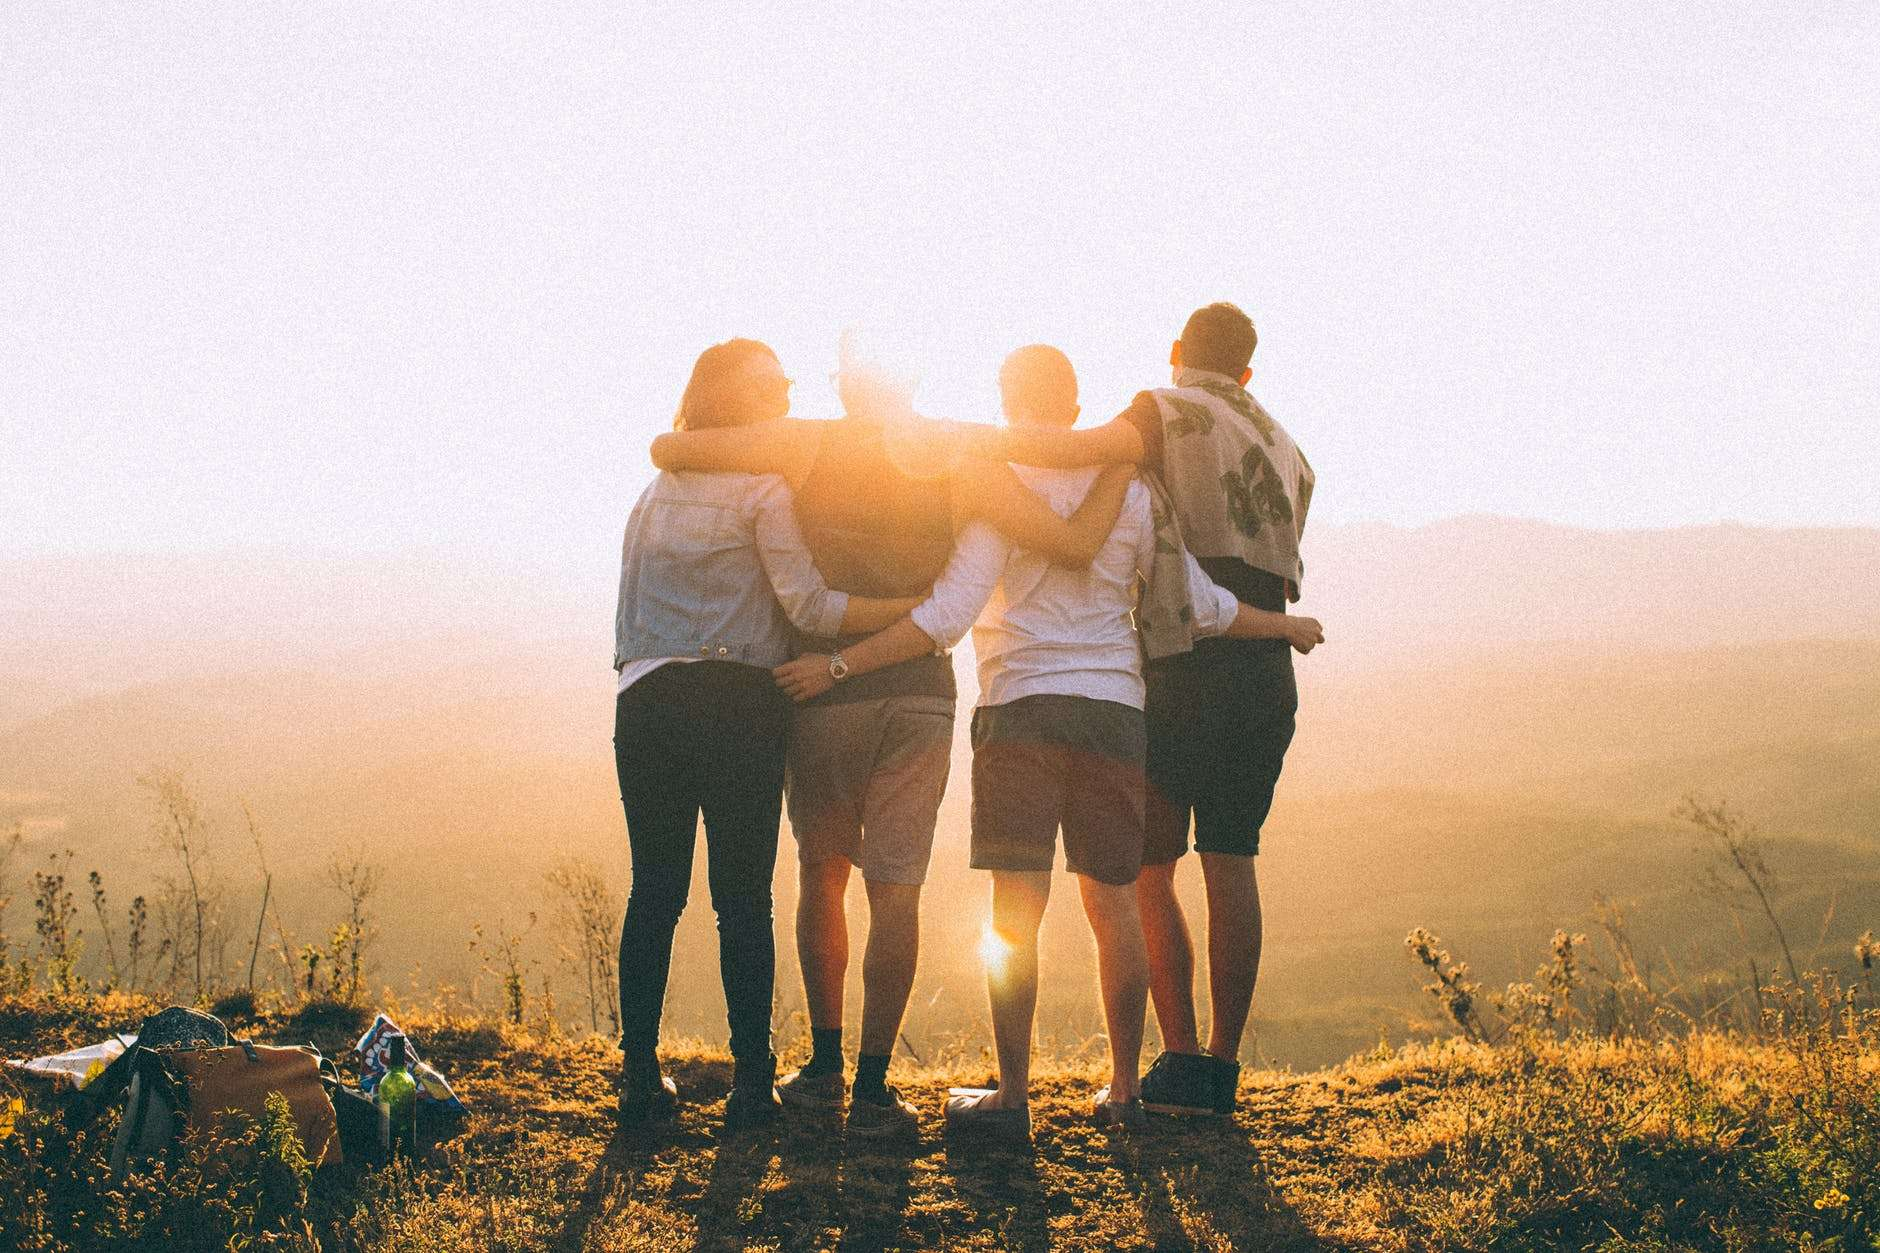 Happy Friendship Day 2021: Wishes, Messages, Quotes, Images, Facebook & Whatsapp status